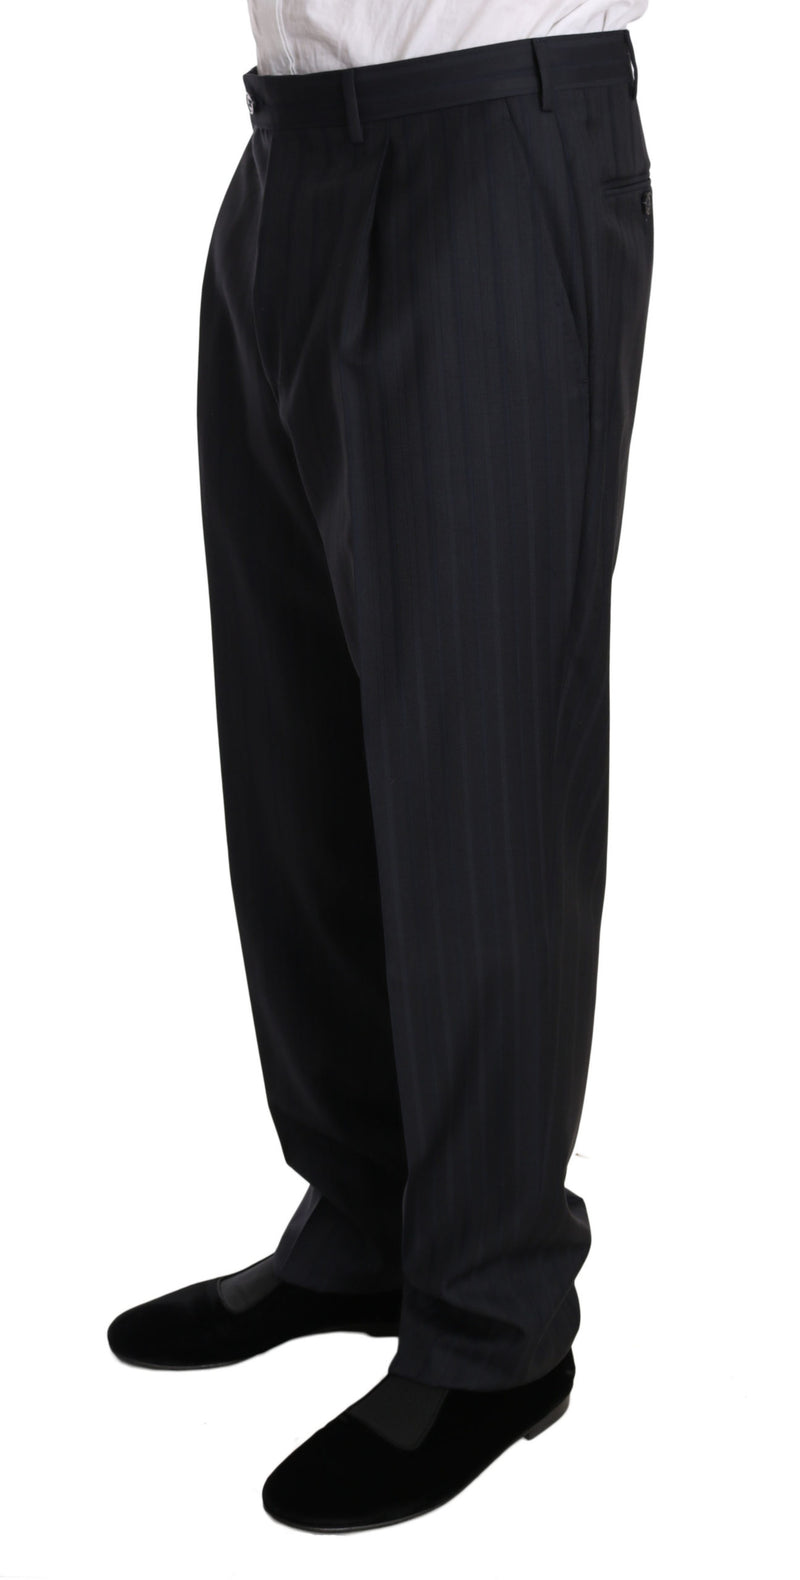 Black Green Striped High Waist Trouser Pants